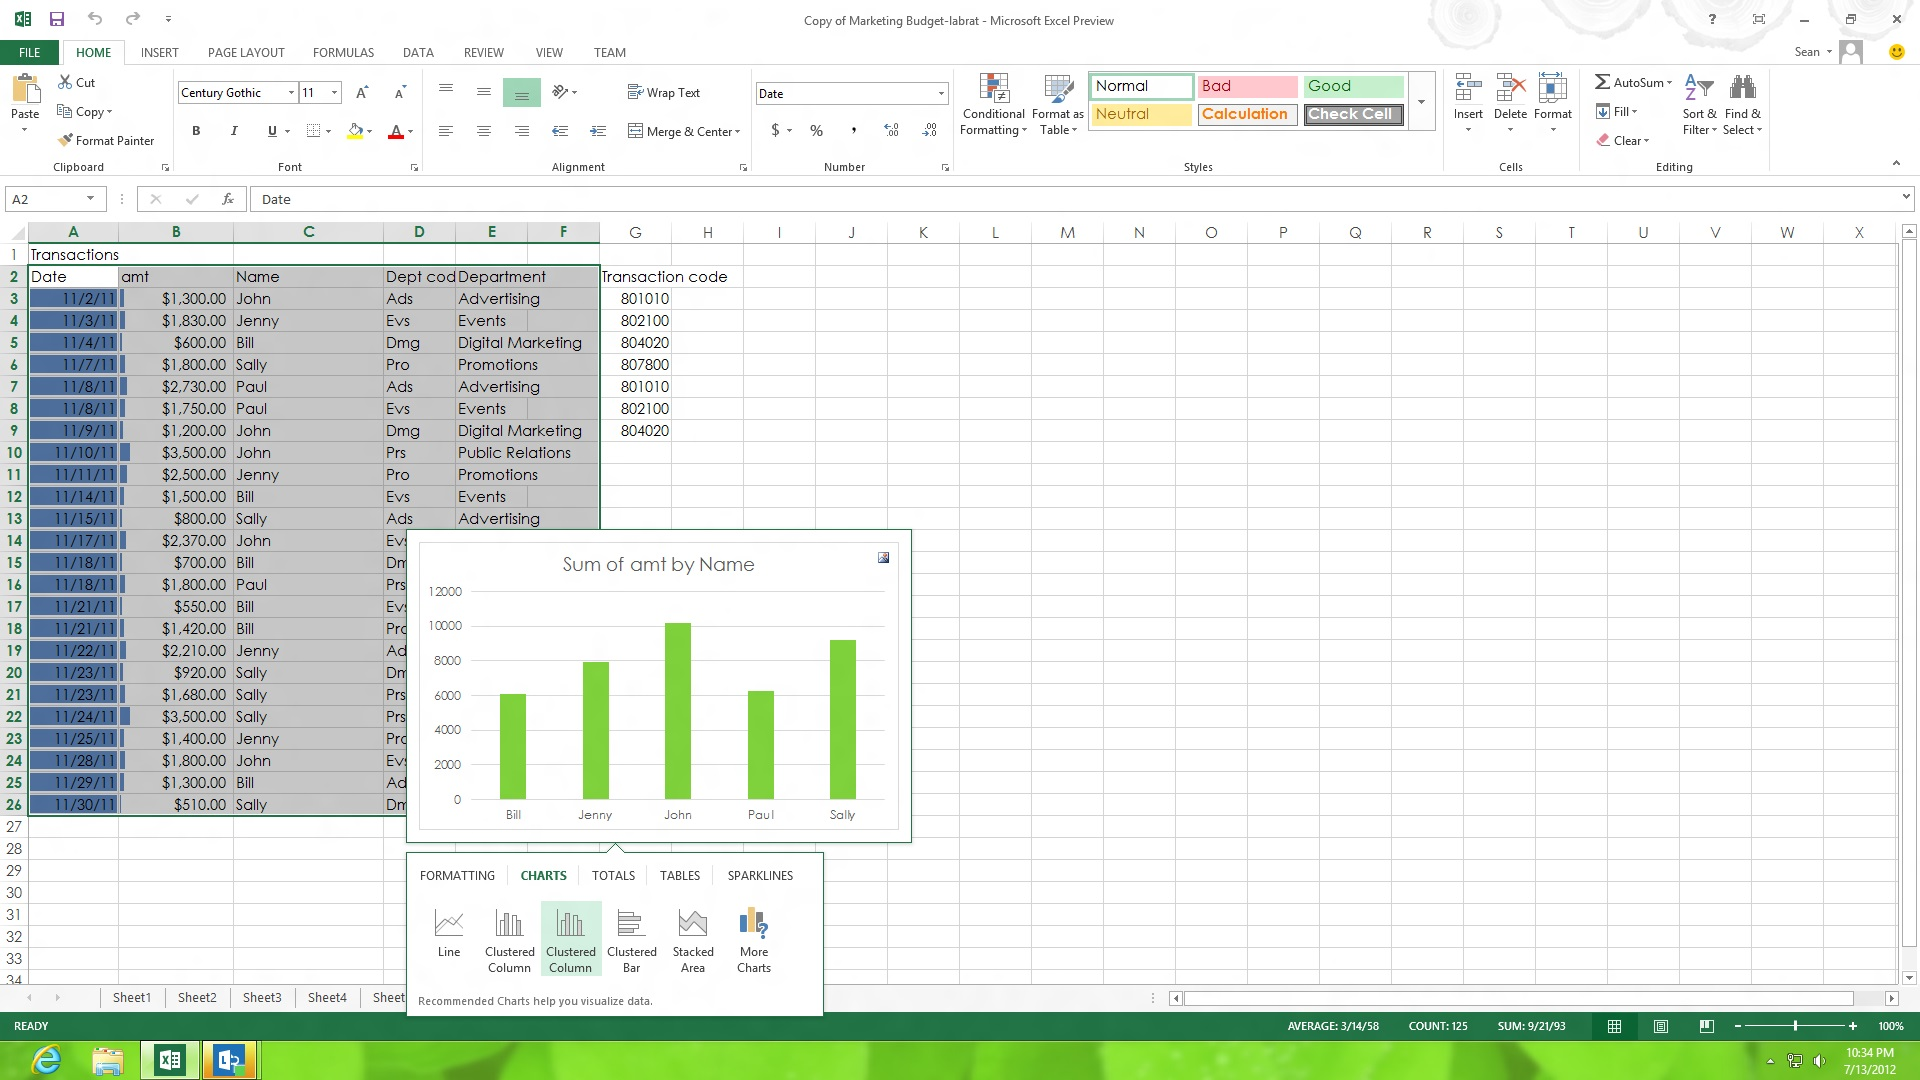 Ediblewildsus  Nice First Look Excel   Ars Technica With Great Enlarge  With Captivating Excel Exams Also Vba Function Excel In Addition Excel Shortcut Subscript And Excel Line Graph Tutorial As Well As Examples Of Excel Spreadsheets For Business Additionally Extract Table From Pdf To Excel From Arstechnicacom With Ediblewildsus  Great First Look Excel   Ars Technica With Captivating Enlarge  And Nice Excel Exams Also Vba Function Excel In Addition Excel Shortcut Subscript From Arstechnicacom